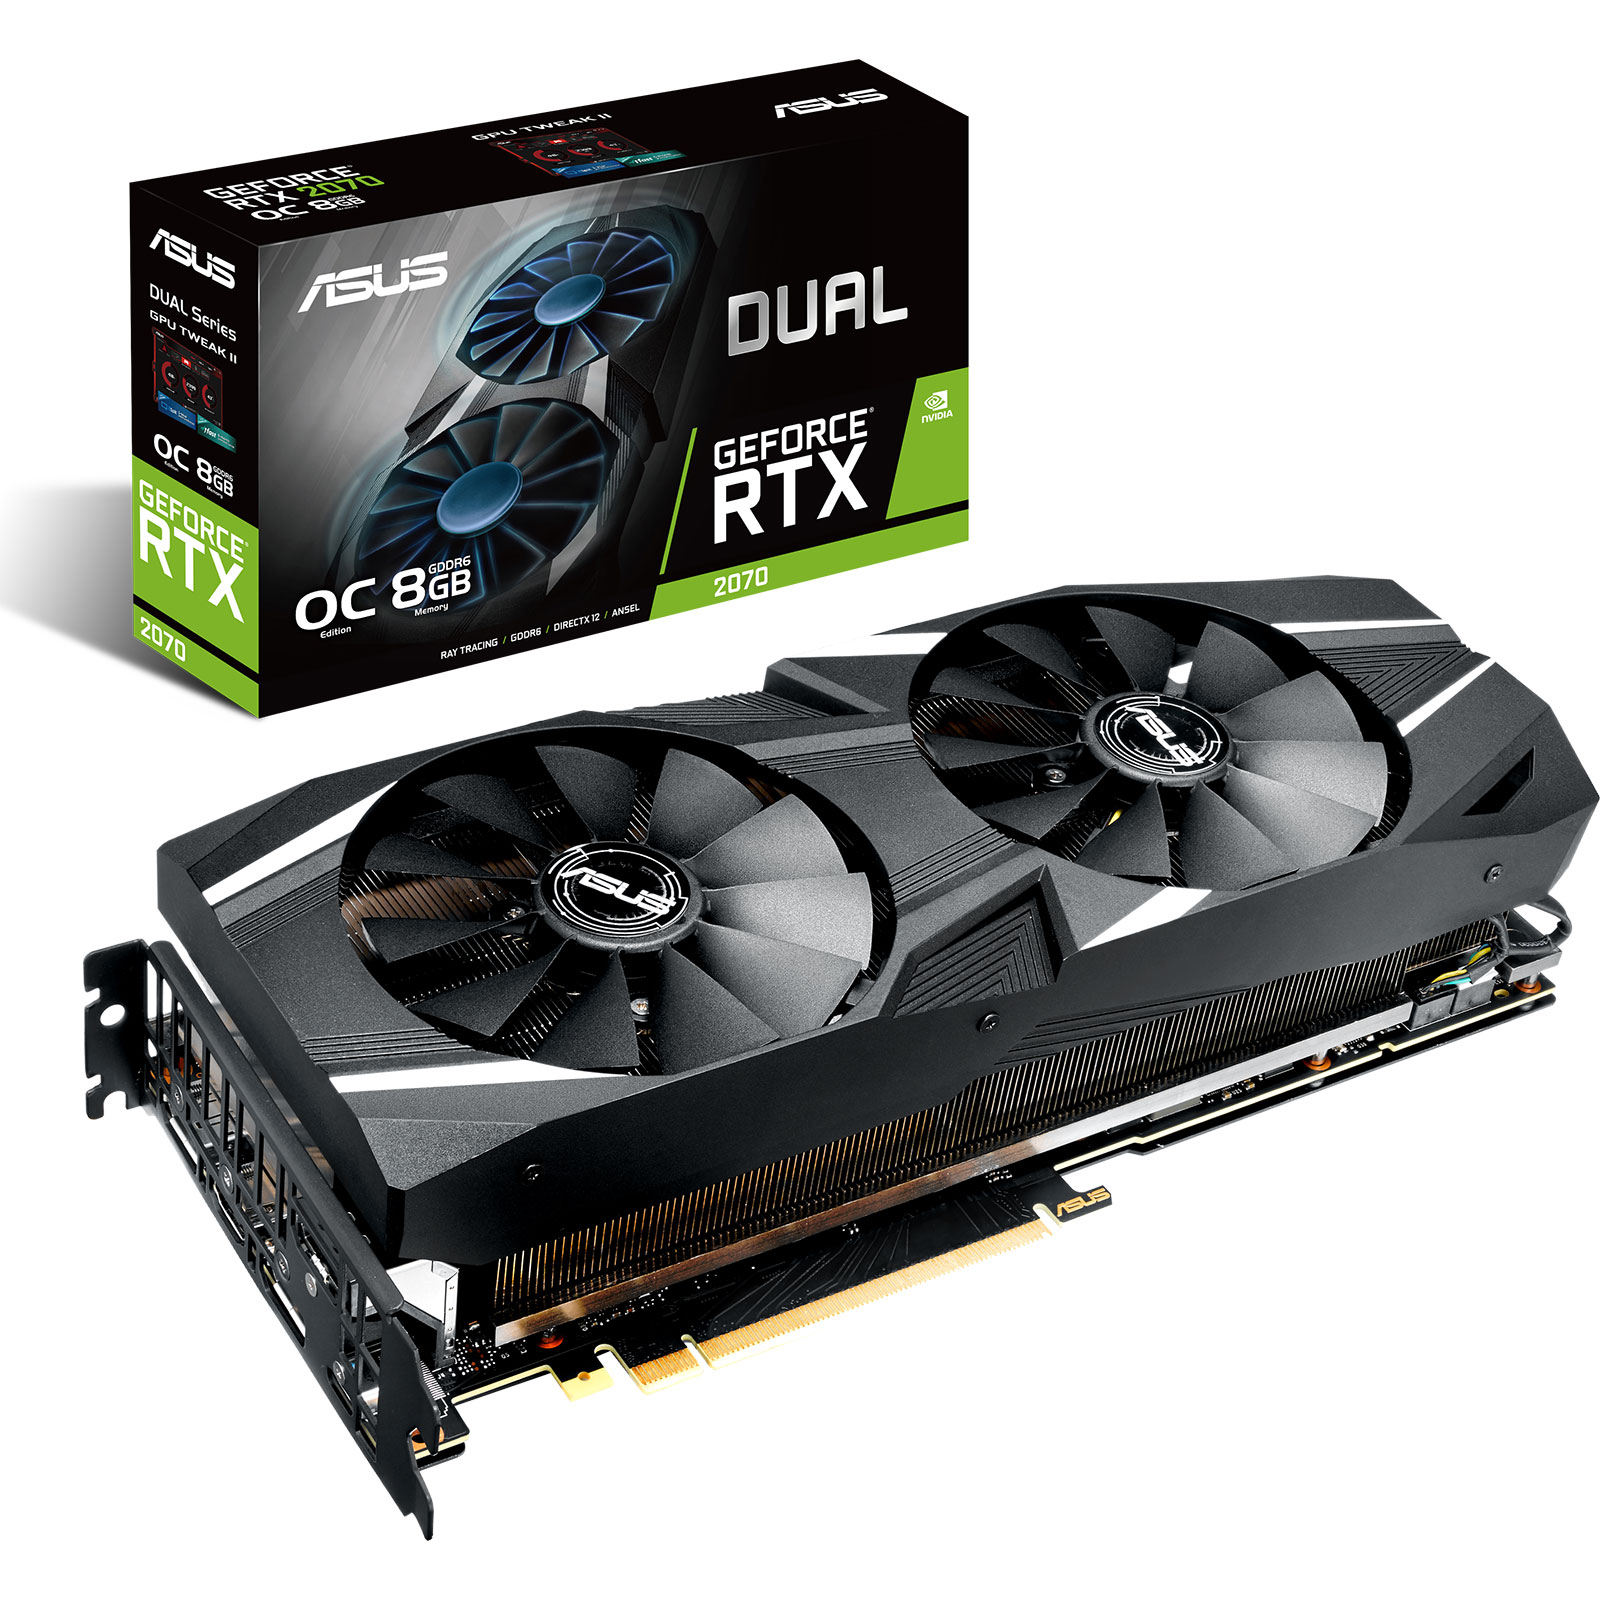 Carte graphique ASUS GeForce RTX 2070 - DUAL-RTX2070-O8G 8 Go GDDR6 - HDMI/Tri DisplayPort/USB Type-C - PCI Express (NVIDIA GeForce RTX 2070)